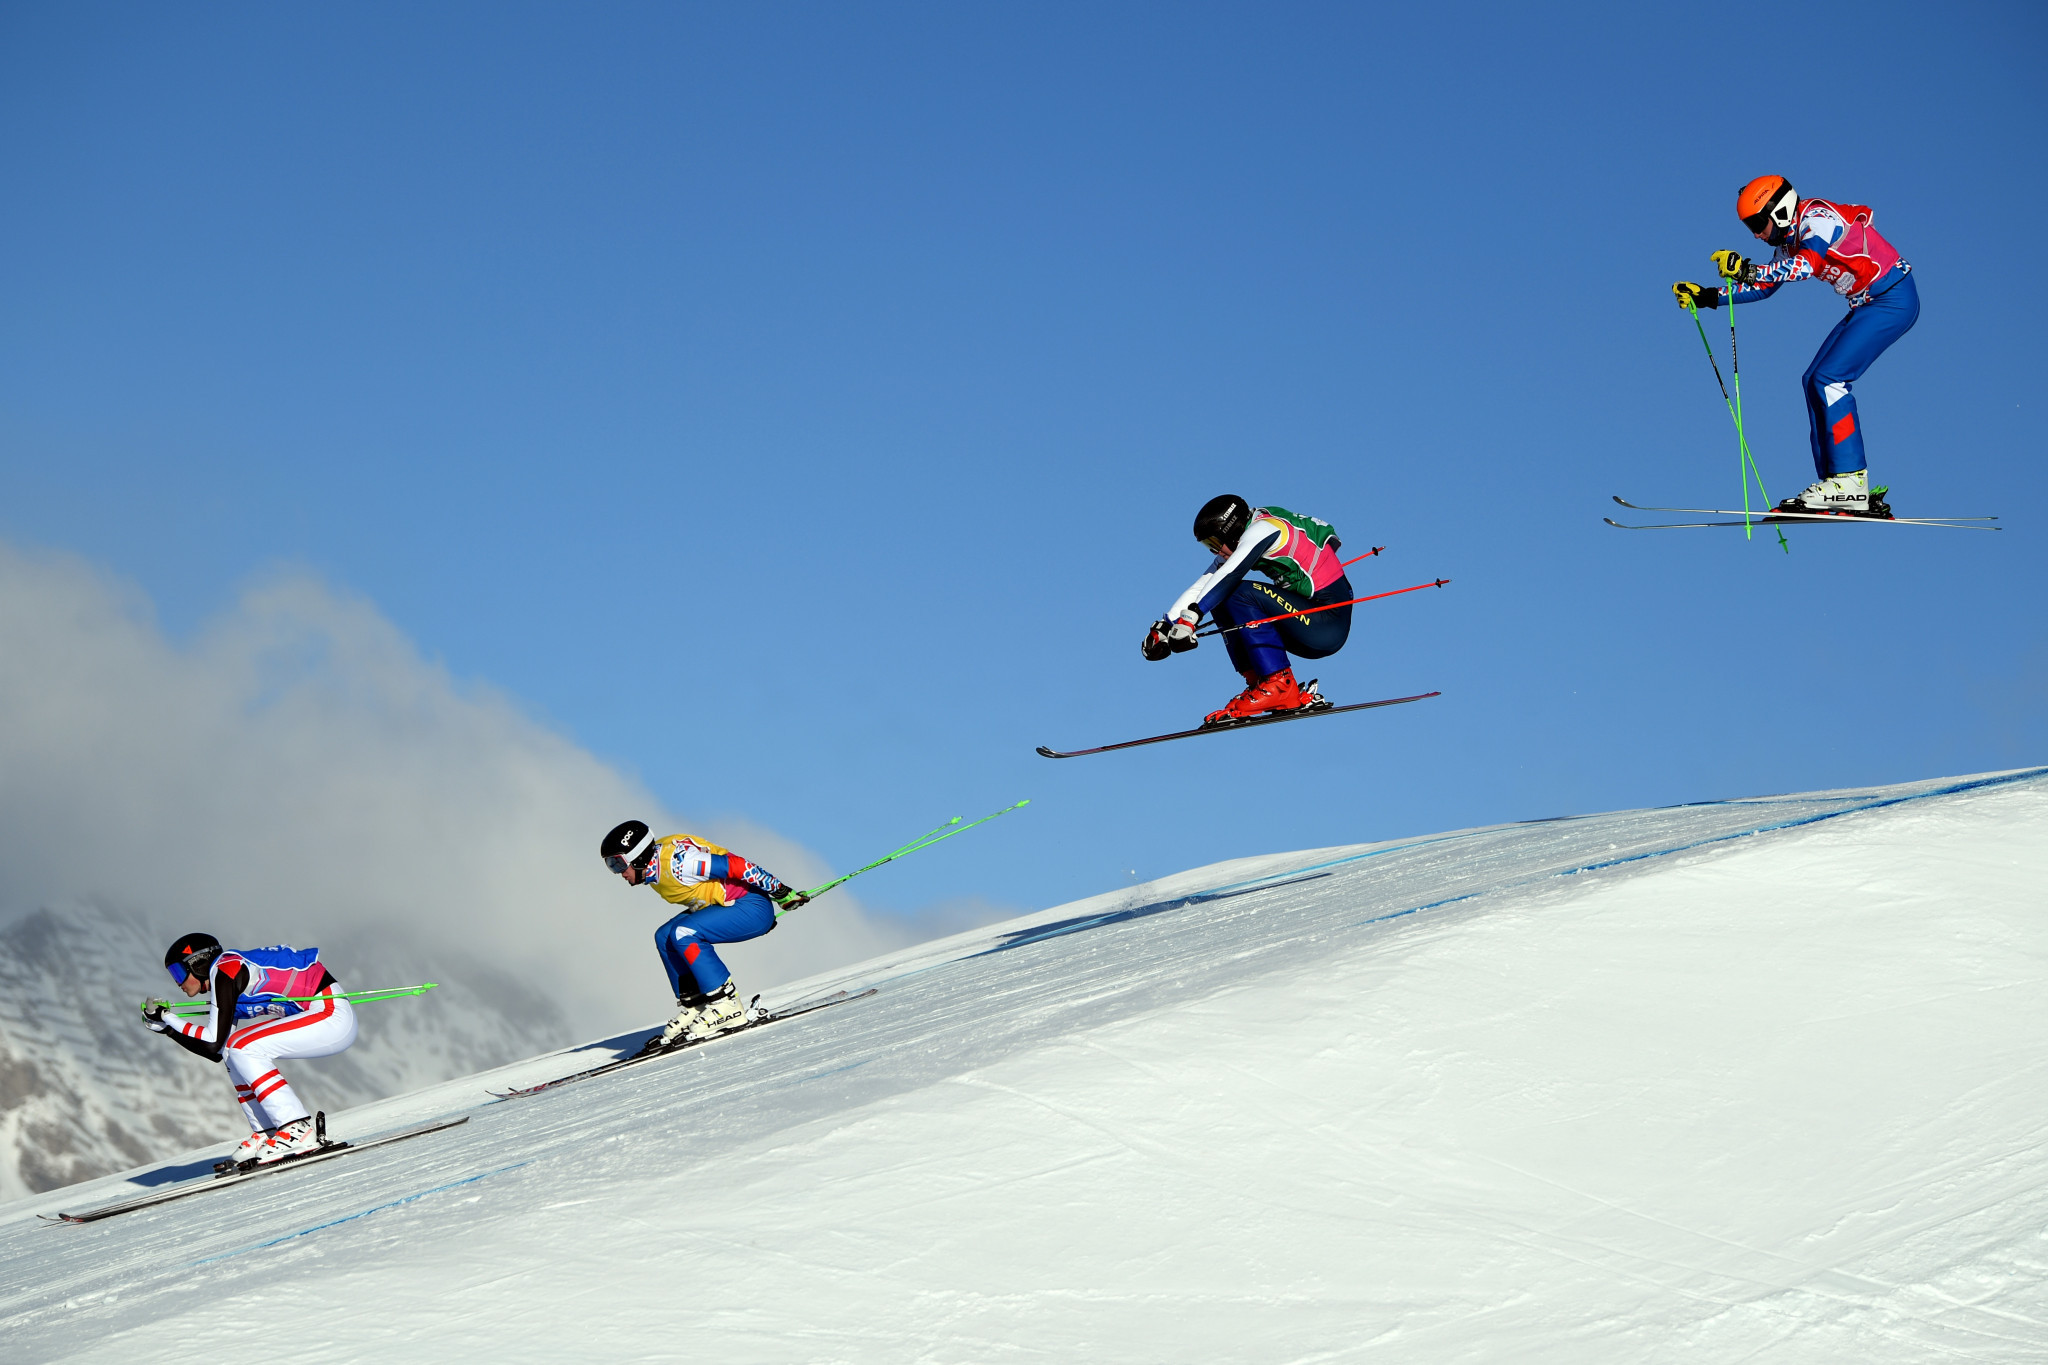 Ski cross was among the highlights on day 10 at Lausanne 2020 ©Getty Images